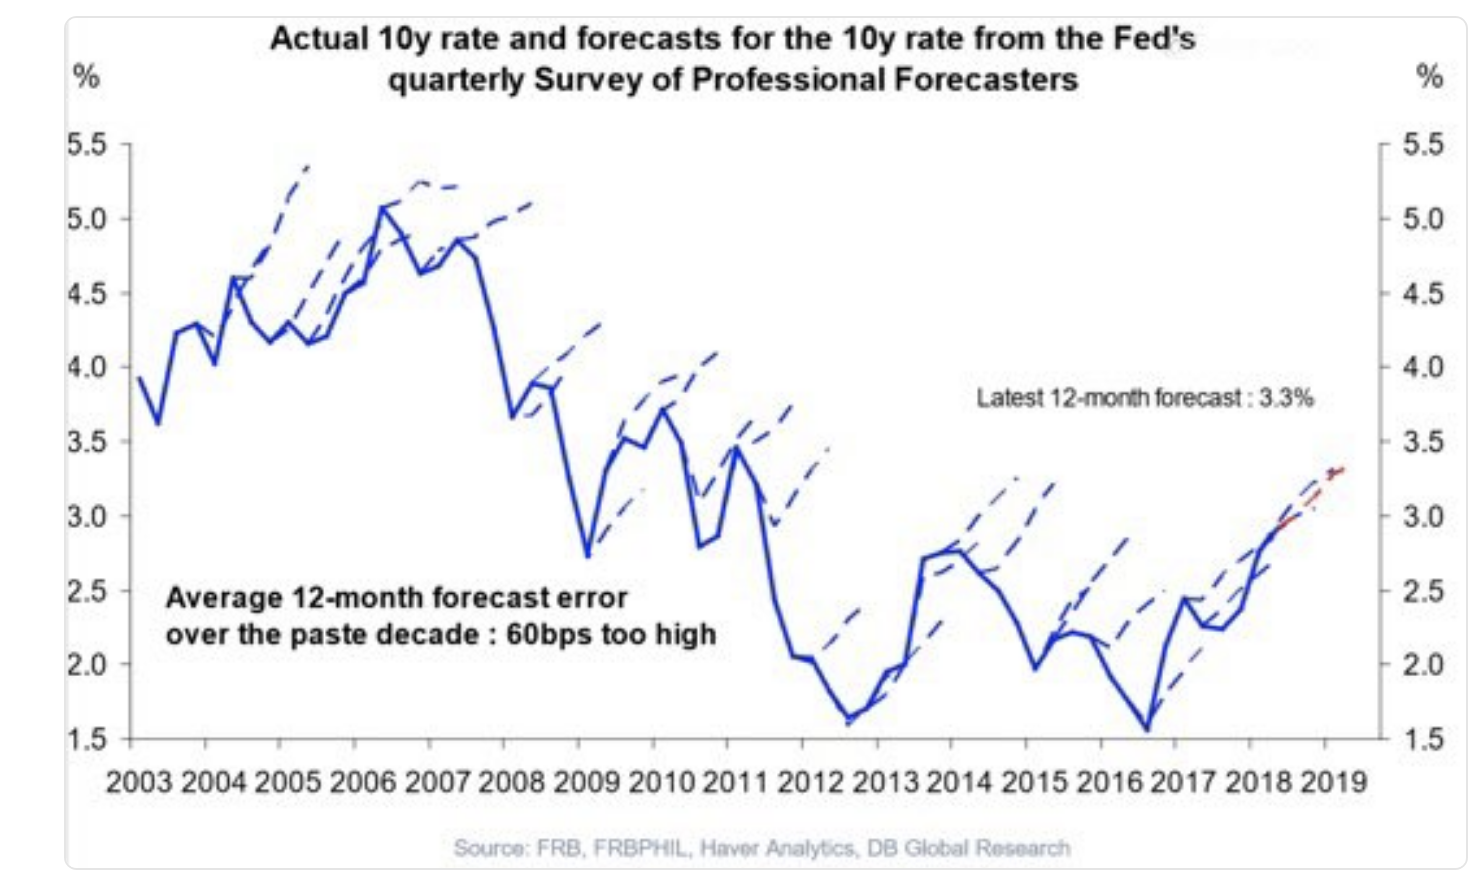 10y rate and forecasts